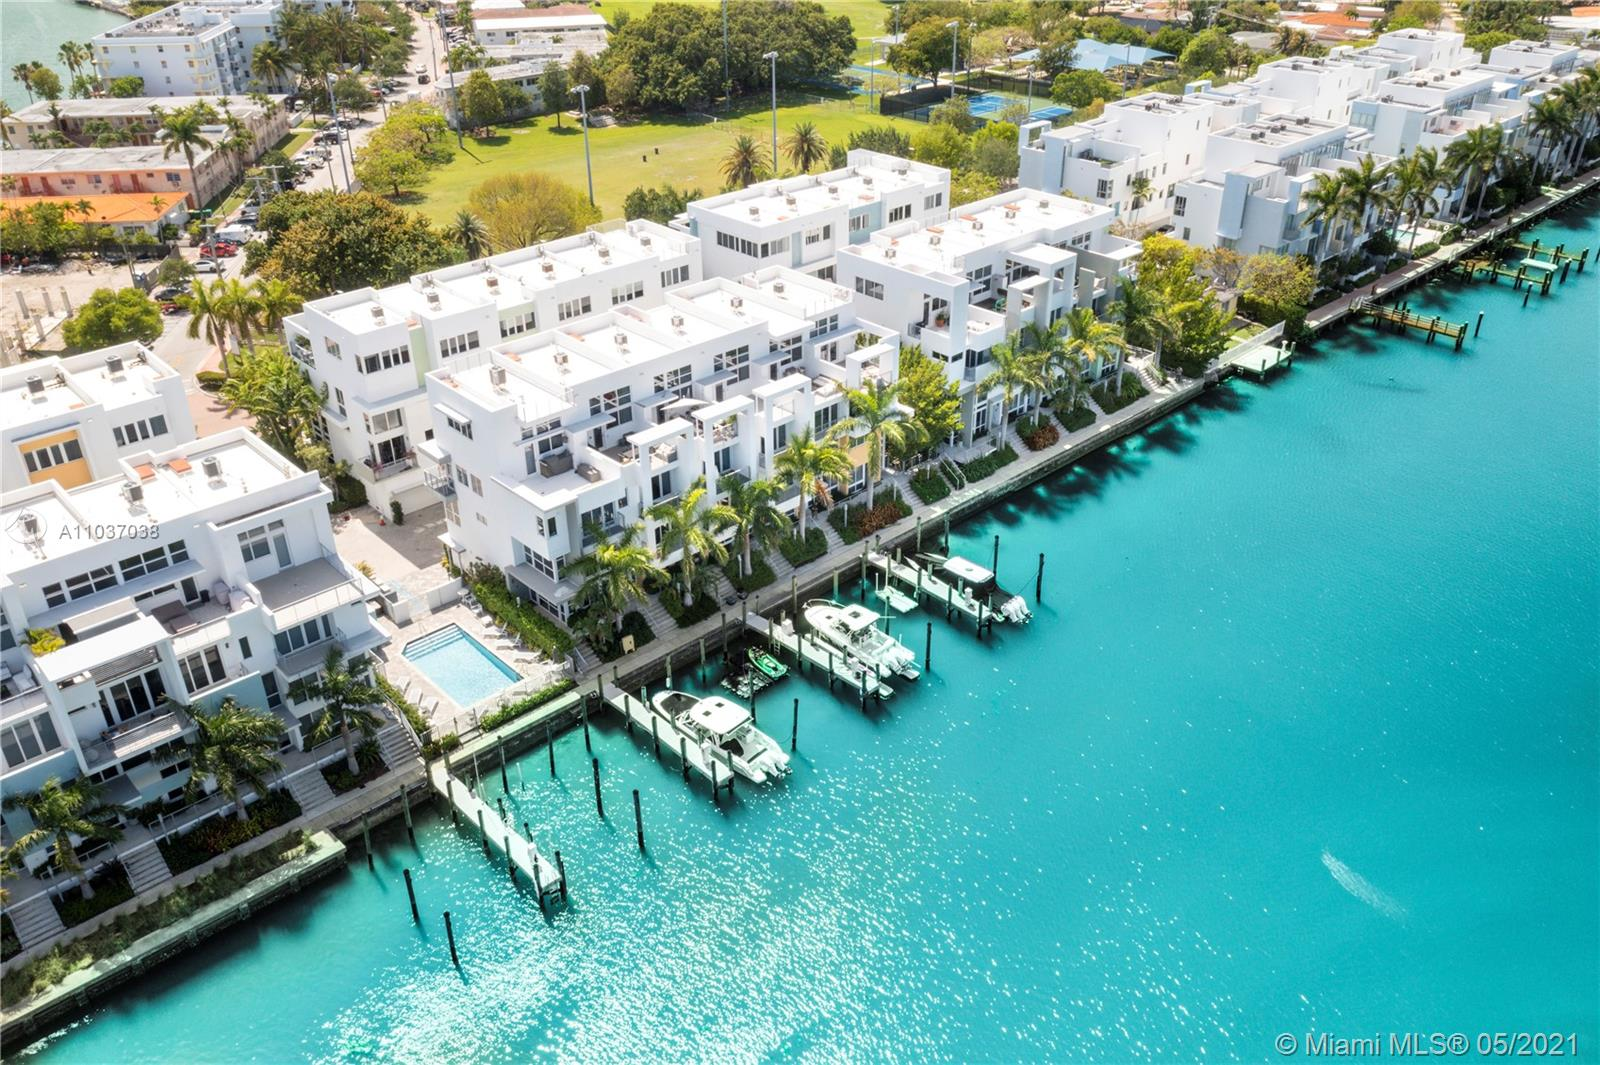 Luxury Waterfront Townhouse with optional dock slip, located in gated waterfront community of Iris on the Bay in North Miami Beach. Fully Furnished, 3 Bed + Den/3.5 Baths, in 4 stories w/private elevator, modern kitchen, stainless steel appliances, gas cooktop, porcelain floors, double car garage w/lift for 3rd car, electric blinds, laundry room. Waterfront rooftop terrace w/TV, full outdoor kitchen, bbq & bar w/water views. Very low HOA fees. Quiet residential area. Across fully renovated Fairway Park w/tennis & basketball courts, soccer field, kids playground. Normandy Shores Golf just steps away. Walk to Beach, supermarkets & Zagat rated restaurants. Boat slip up to 38ft boat available for sale at additional cost w/ purchase of unit. Only 12 slips in community. Easy to show. A MUST SEE!